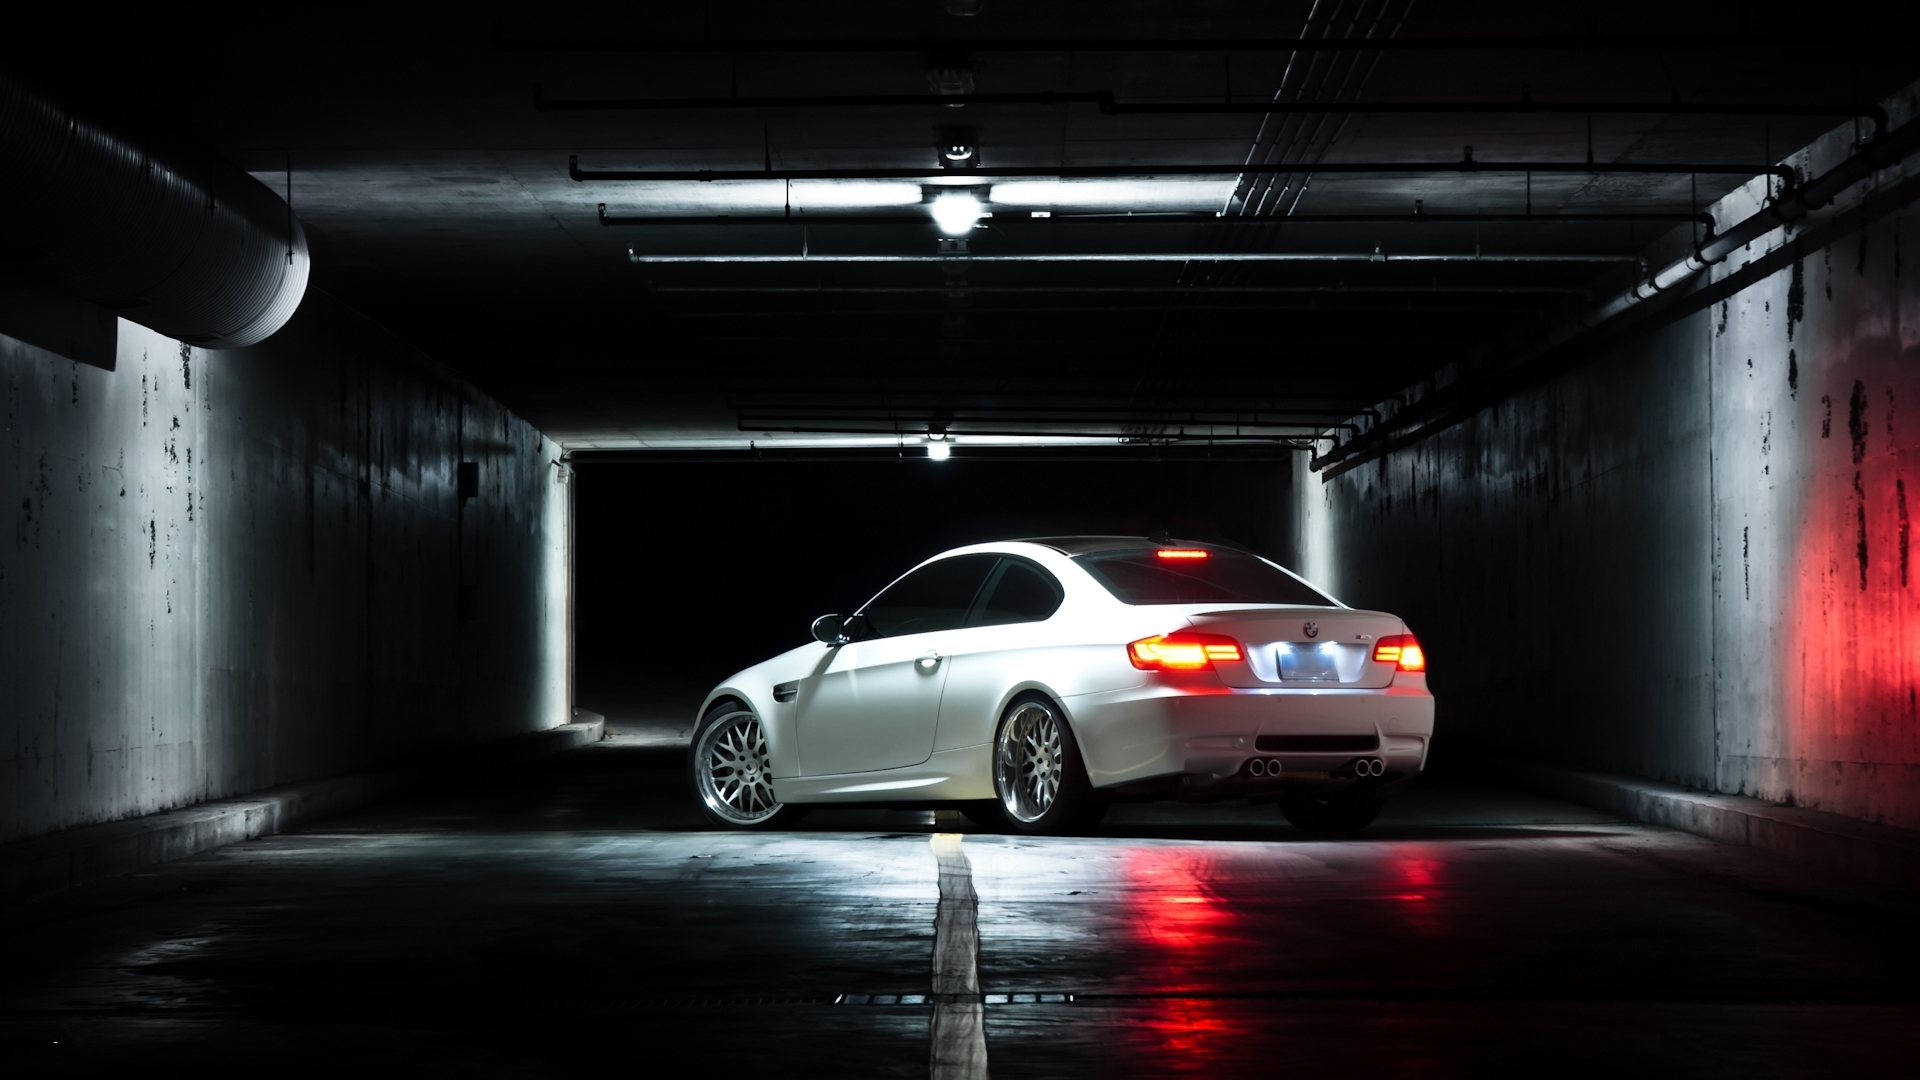 BMW wallpapers | WallpaperUP